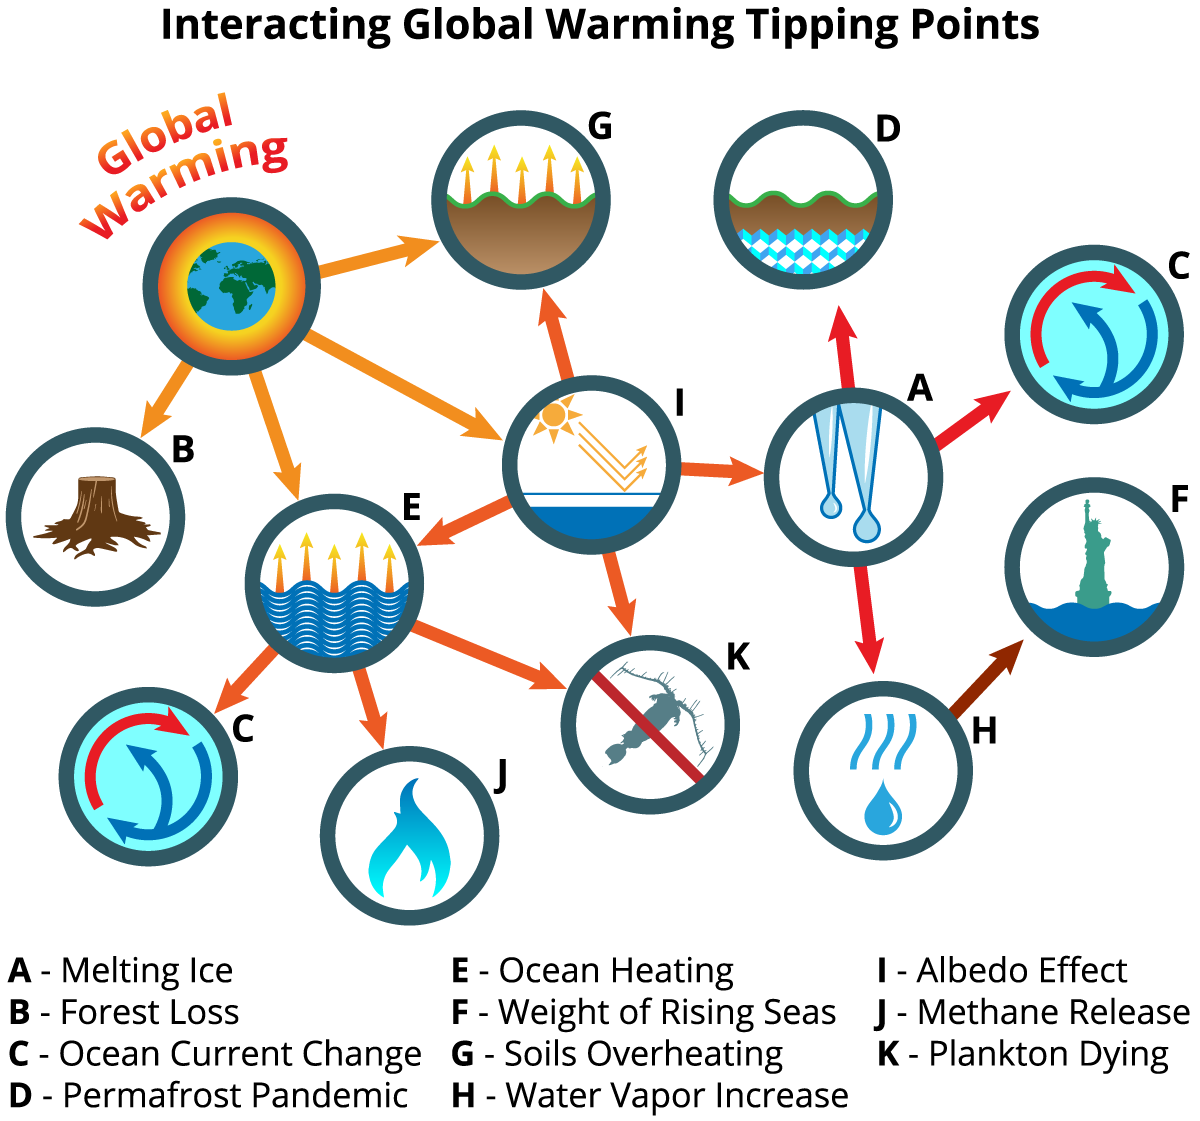 11 key global warming tipping points job one for humanity chapter4interactingglobalwarmingtippingpointsg ccuart Image collections